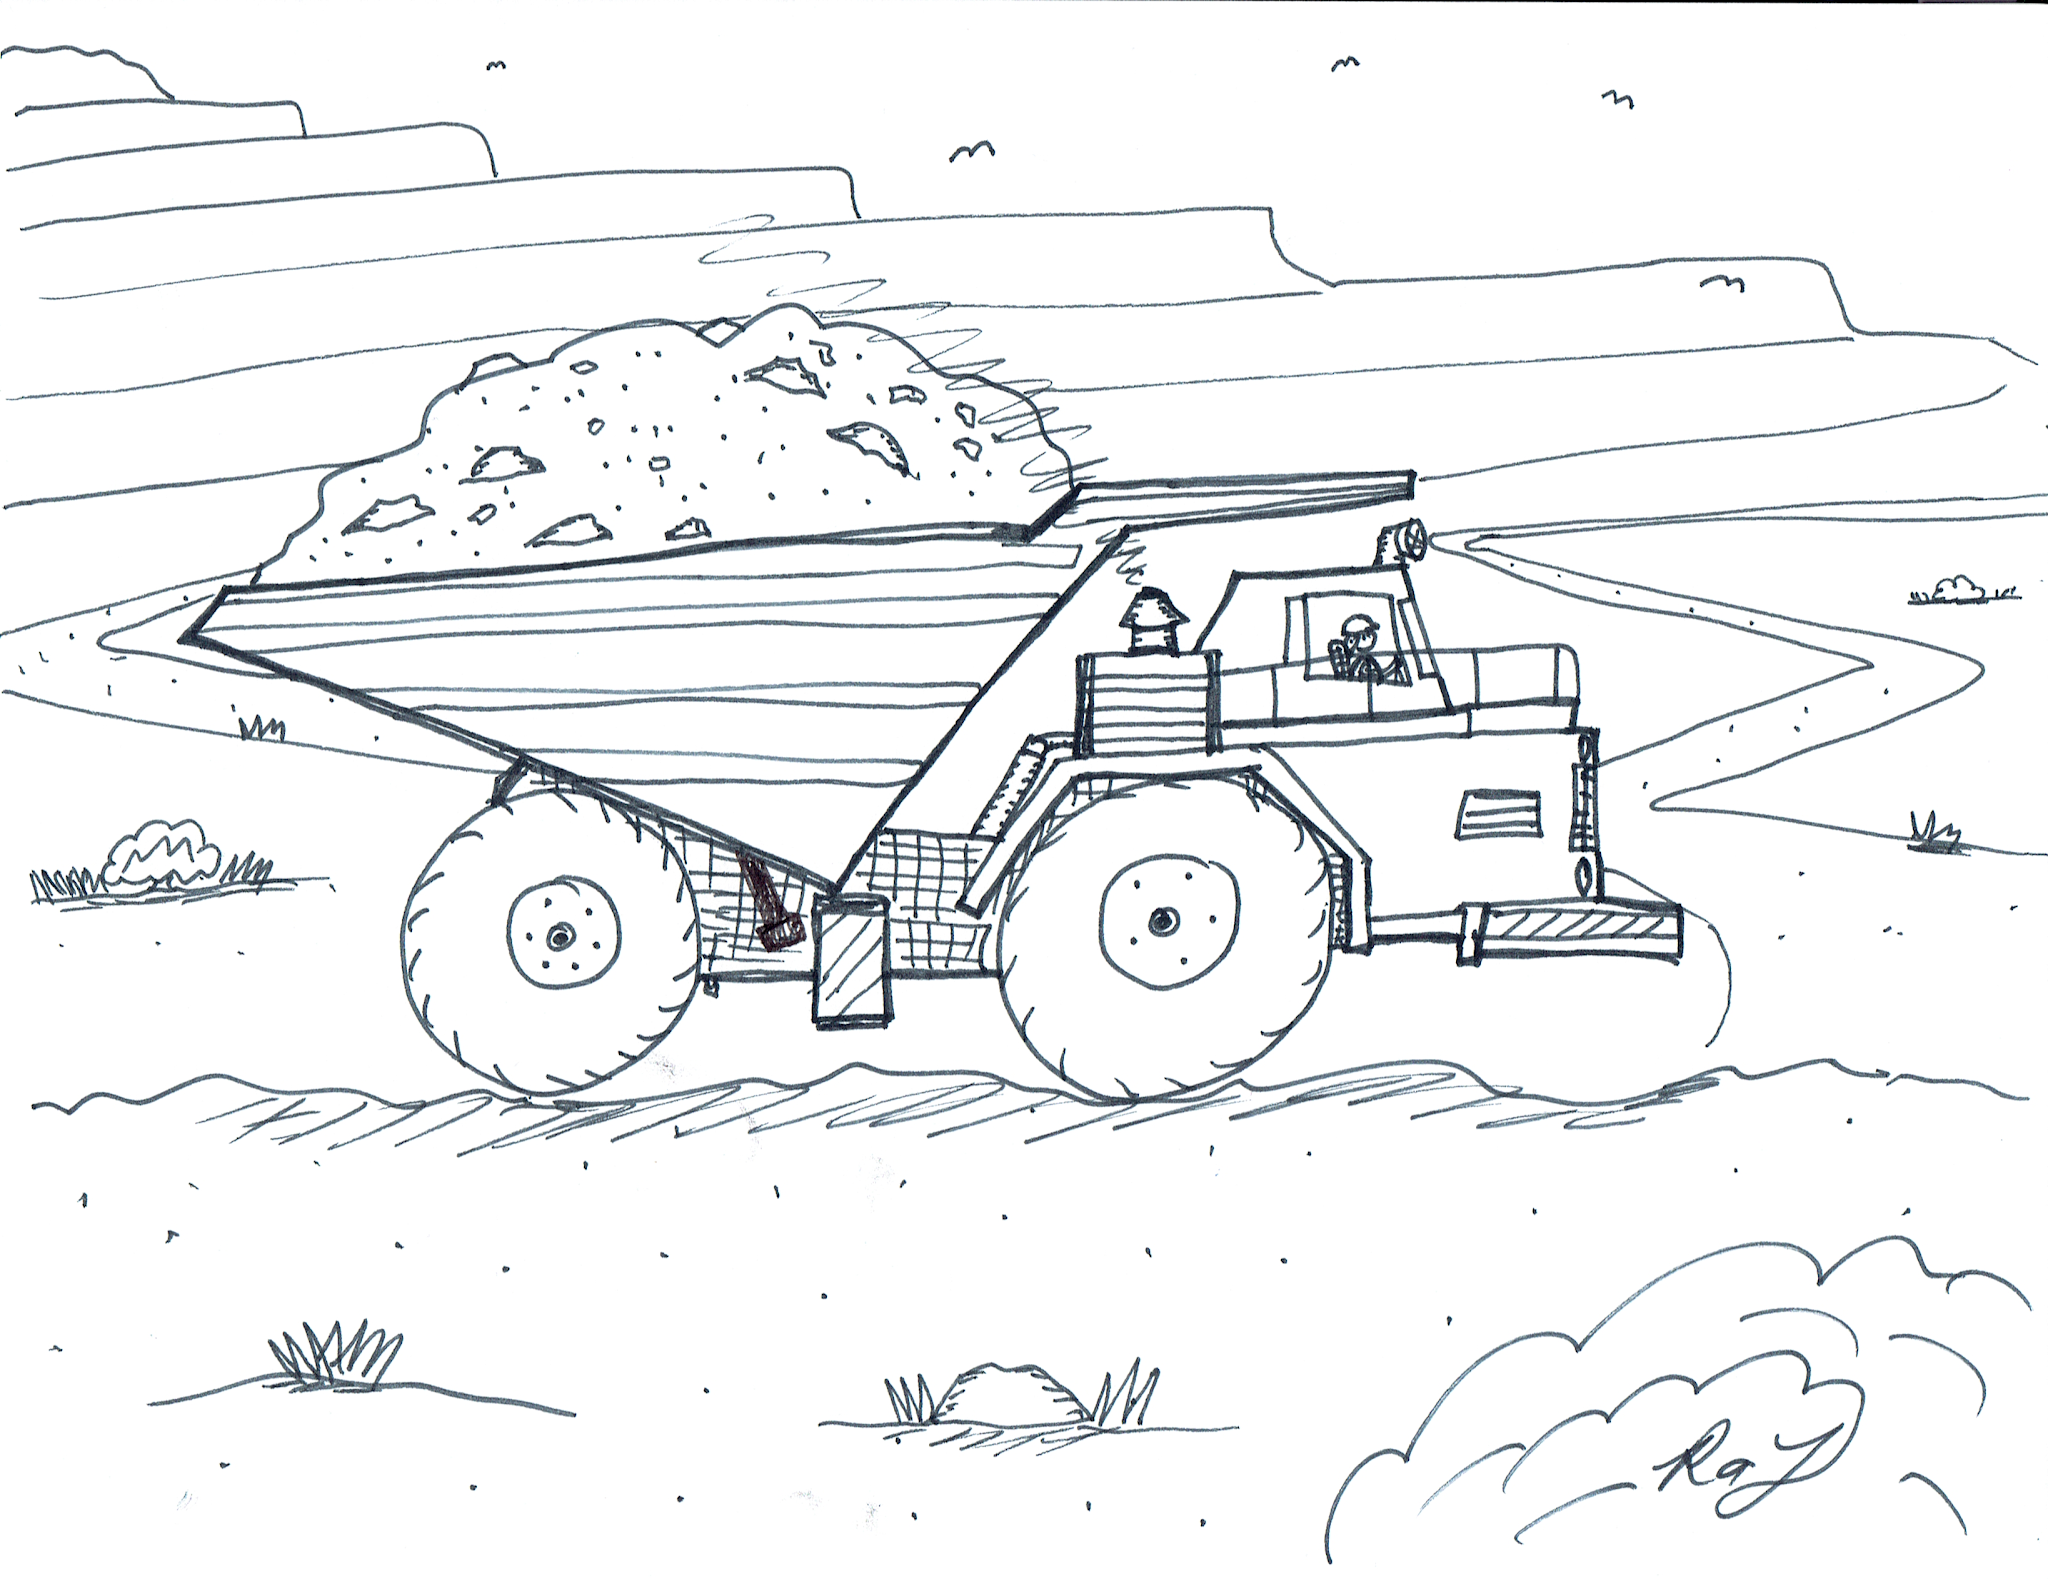 Robin S Great Coloring Pages Haul Truck Coloring Page